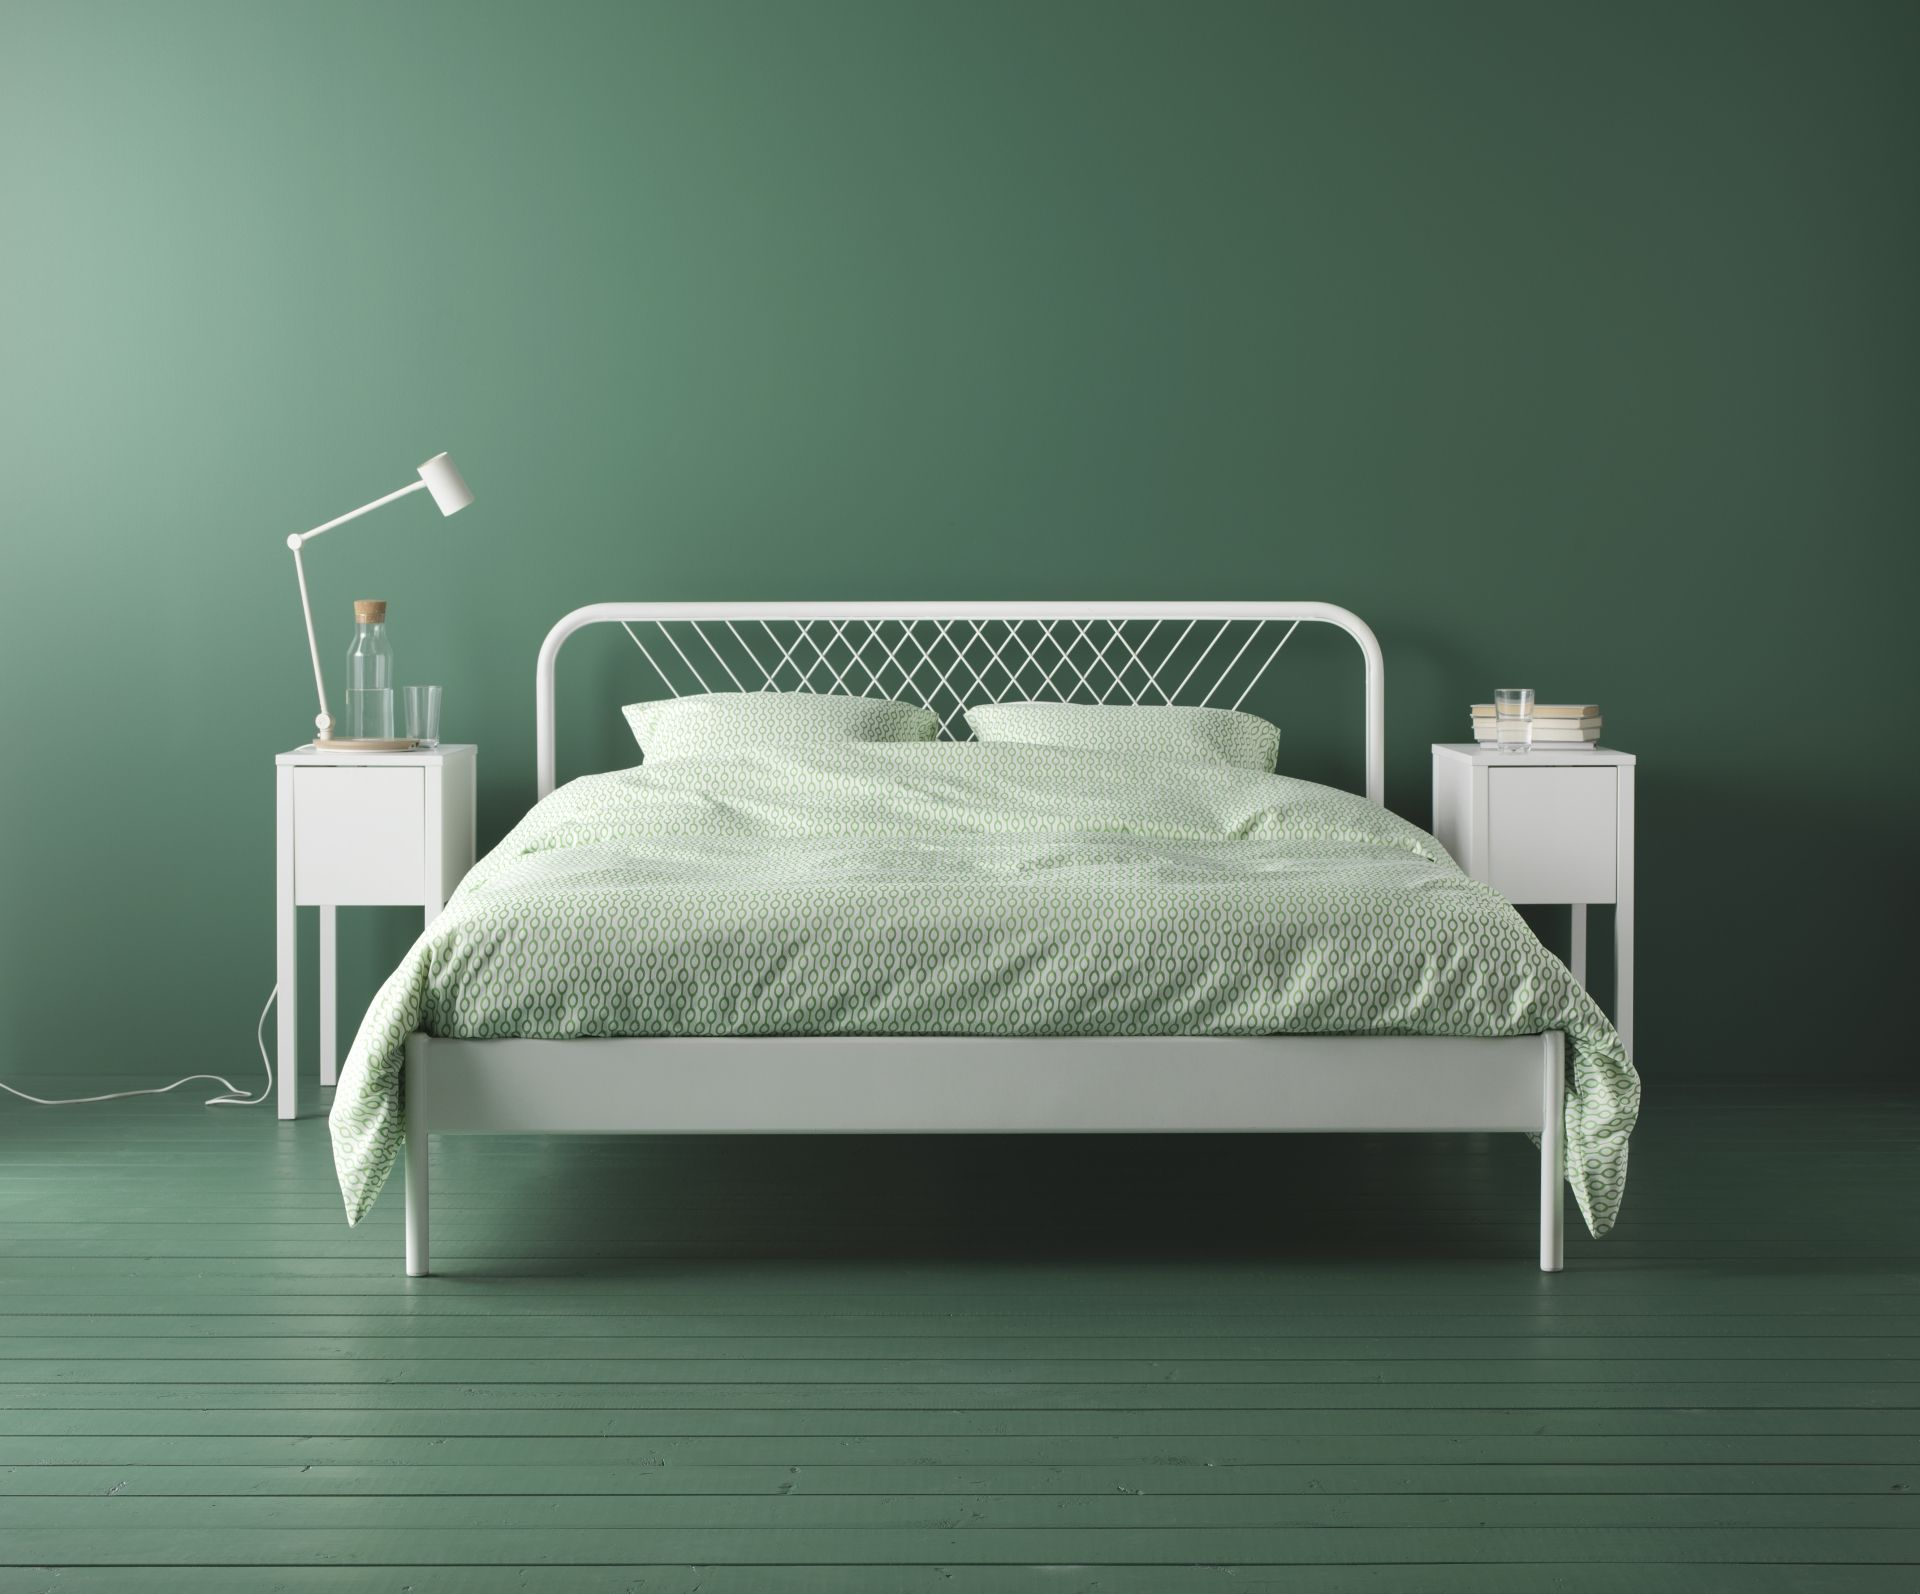 Inspirational ikea bed frame fjellse review insured by ross for Ikea tuffing review